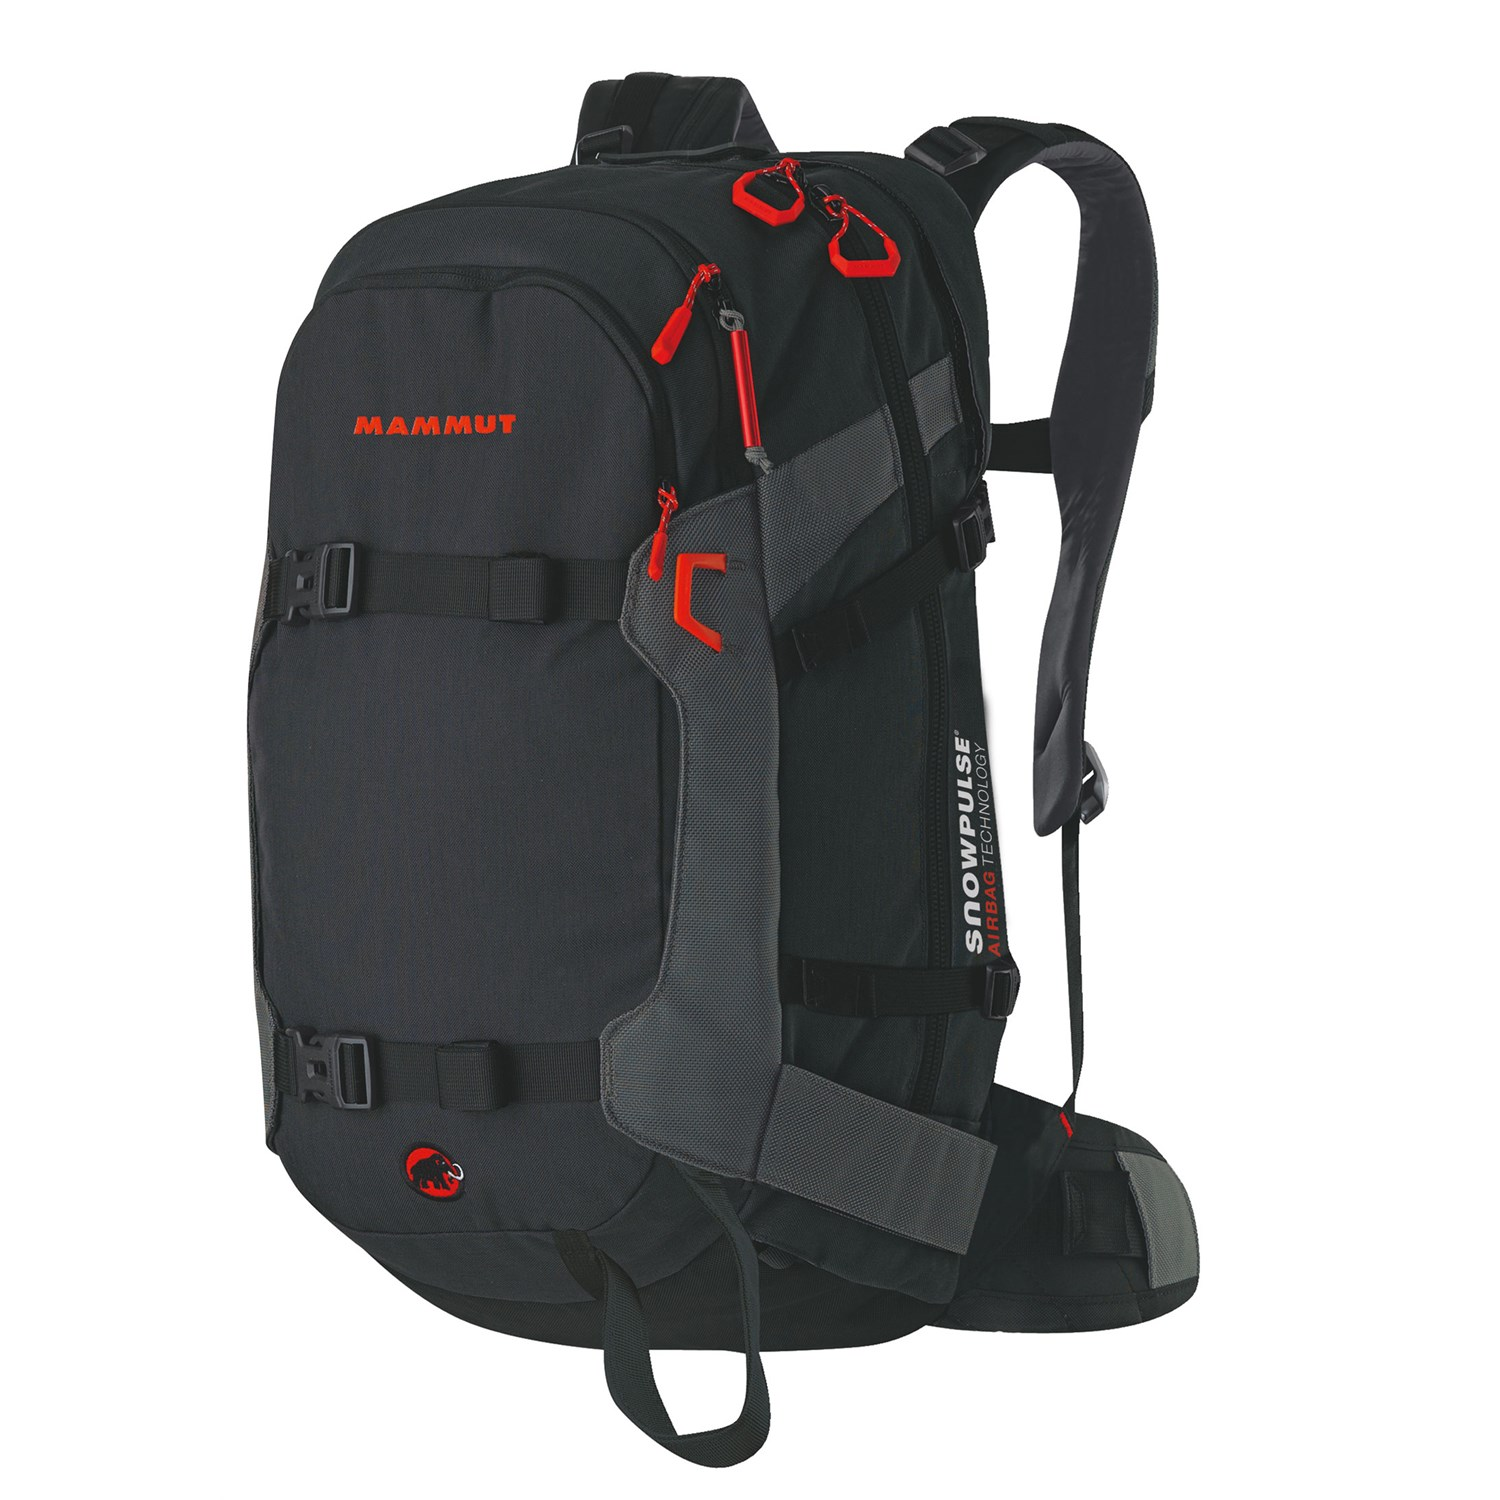 Mammut Ride Removable Airbag Backpack (Set with Airbag) | evo outlet